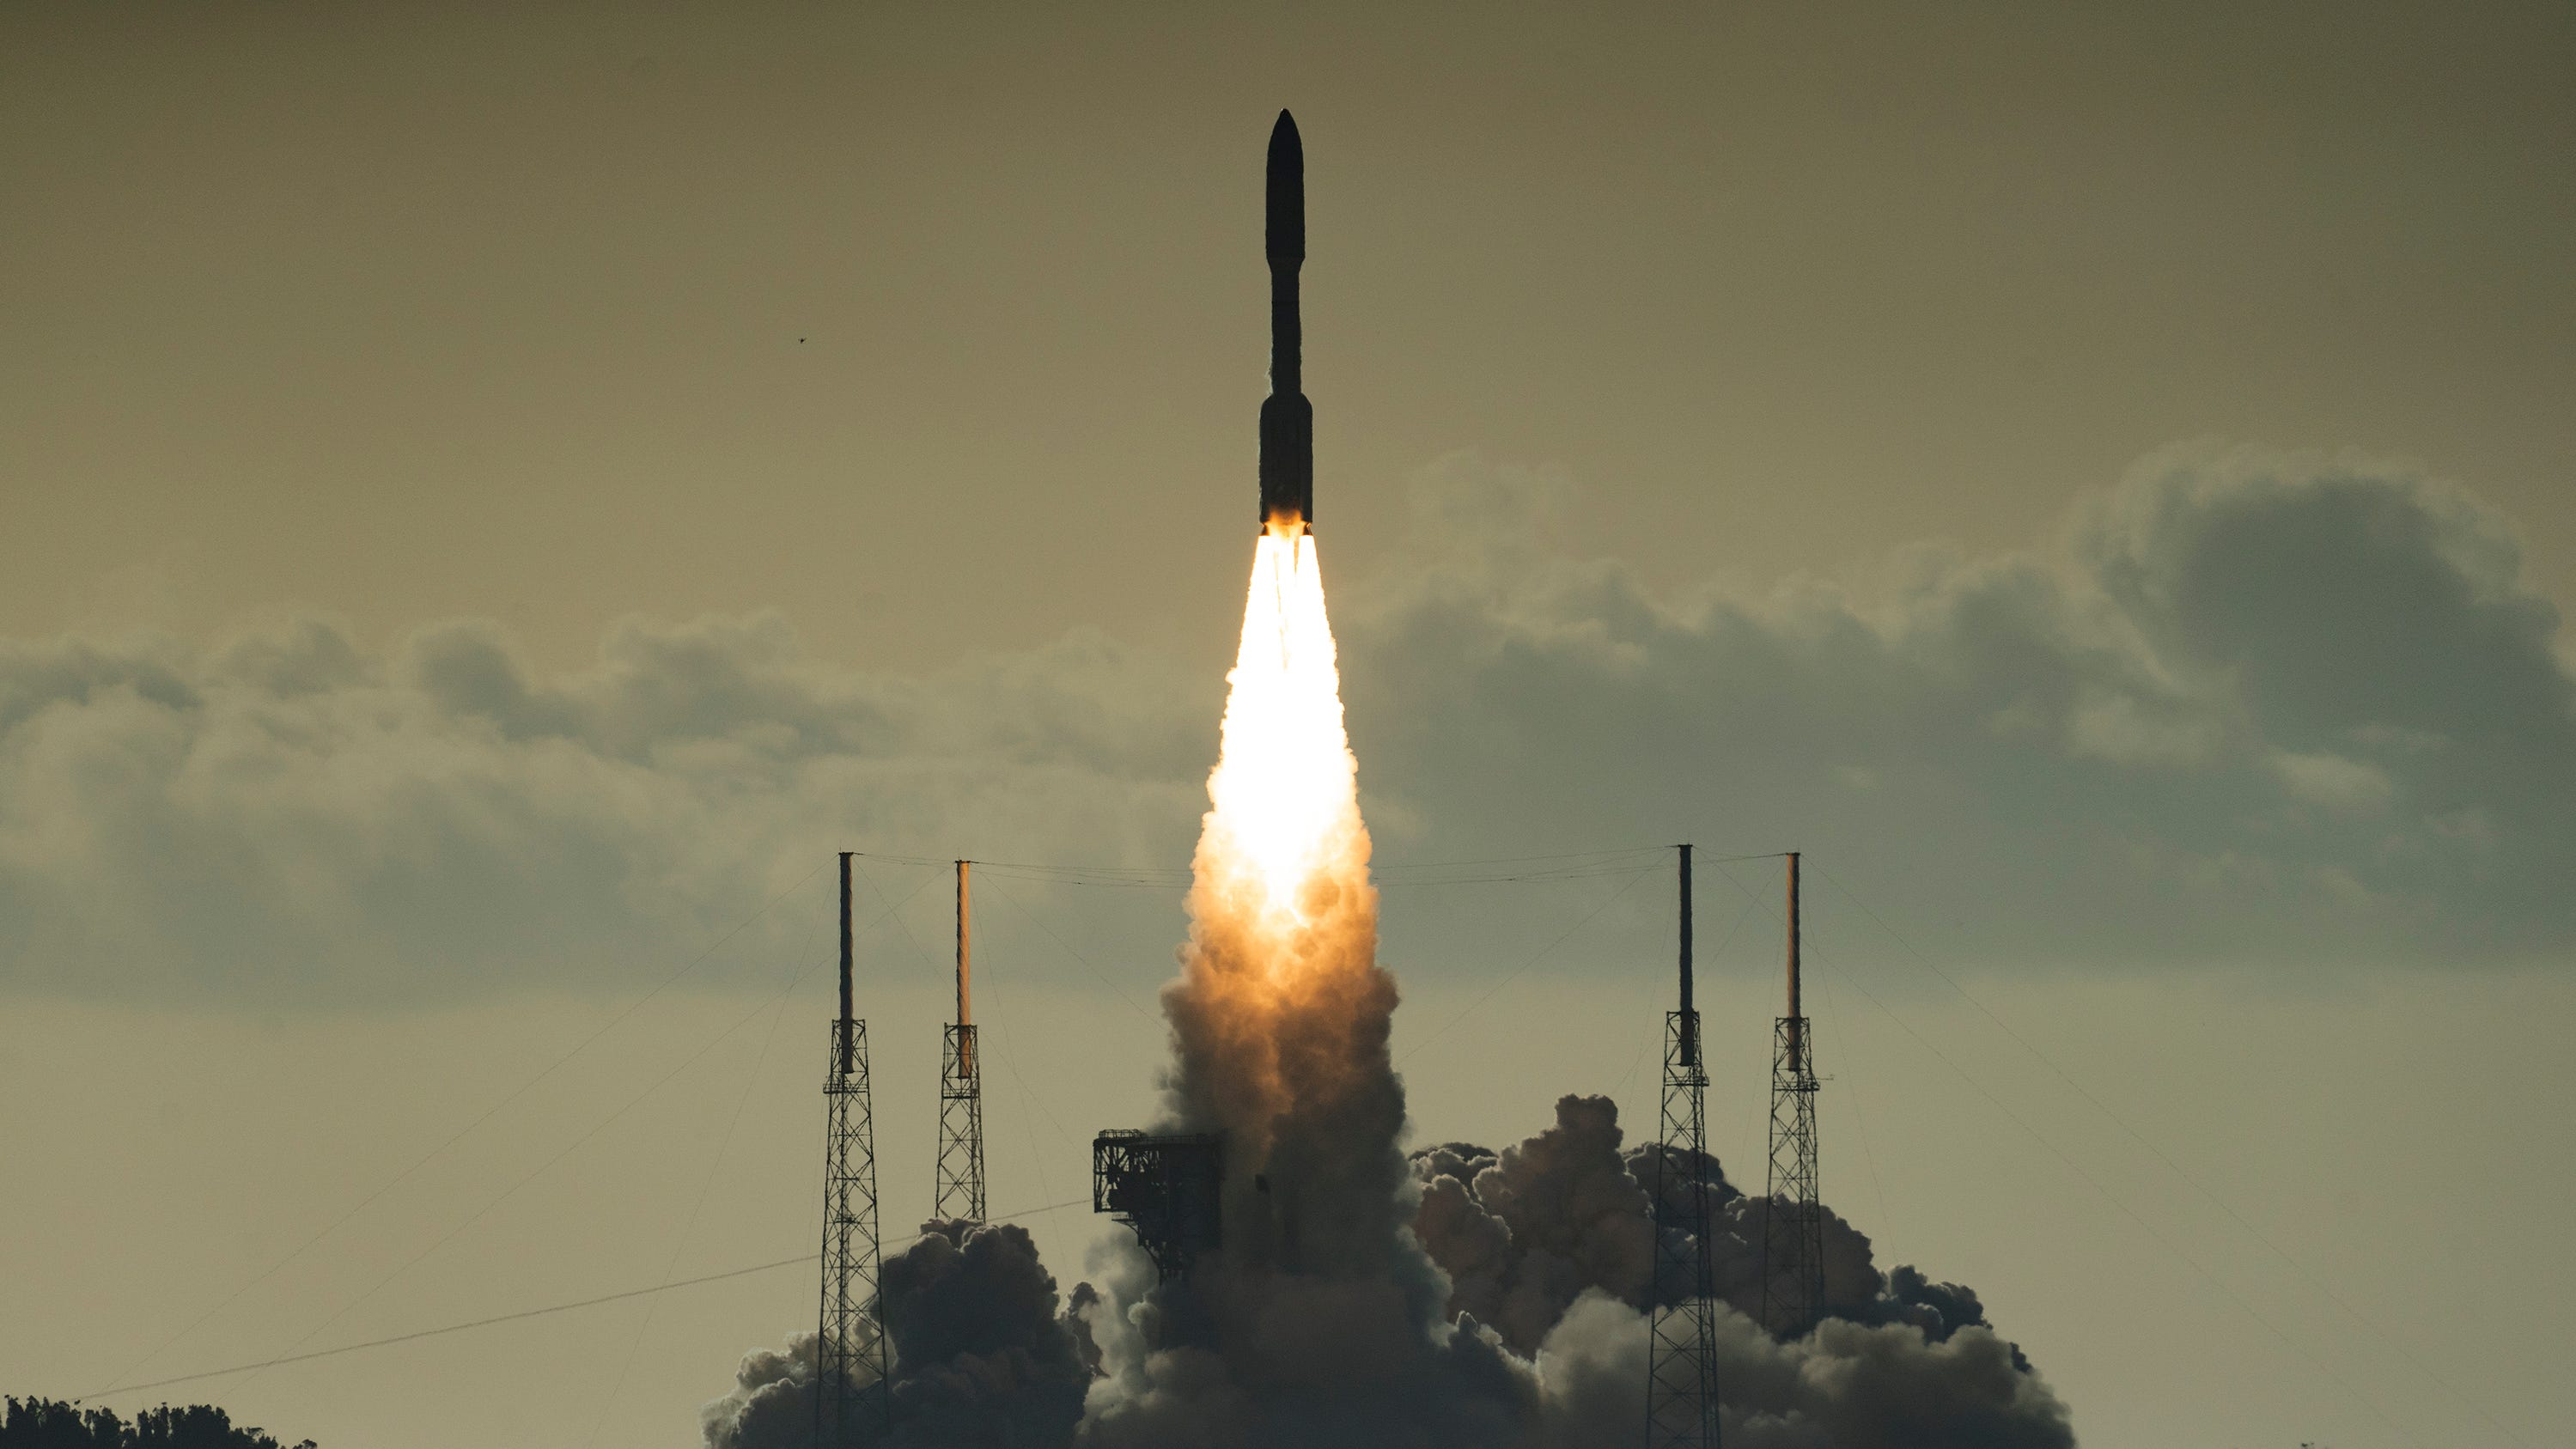 A United Launch Alliance Atlas V rocket launches from Cape Canaveral Air Force Station's Launch Complex 41 on Thursday, July 30, 2020. Onboard was NASA's Mars Perseverance rover, which will arrive at the red planet in about six months.